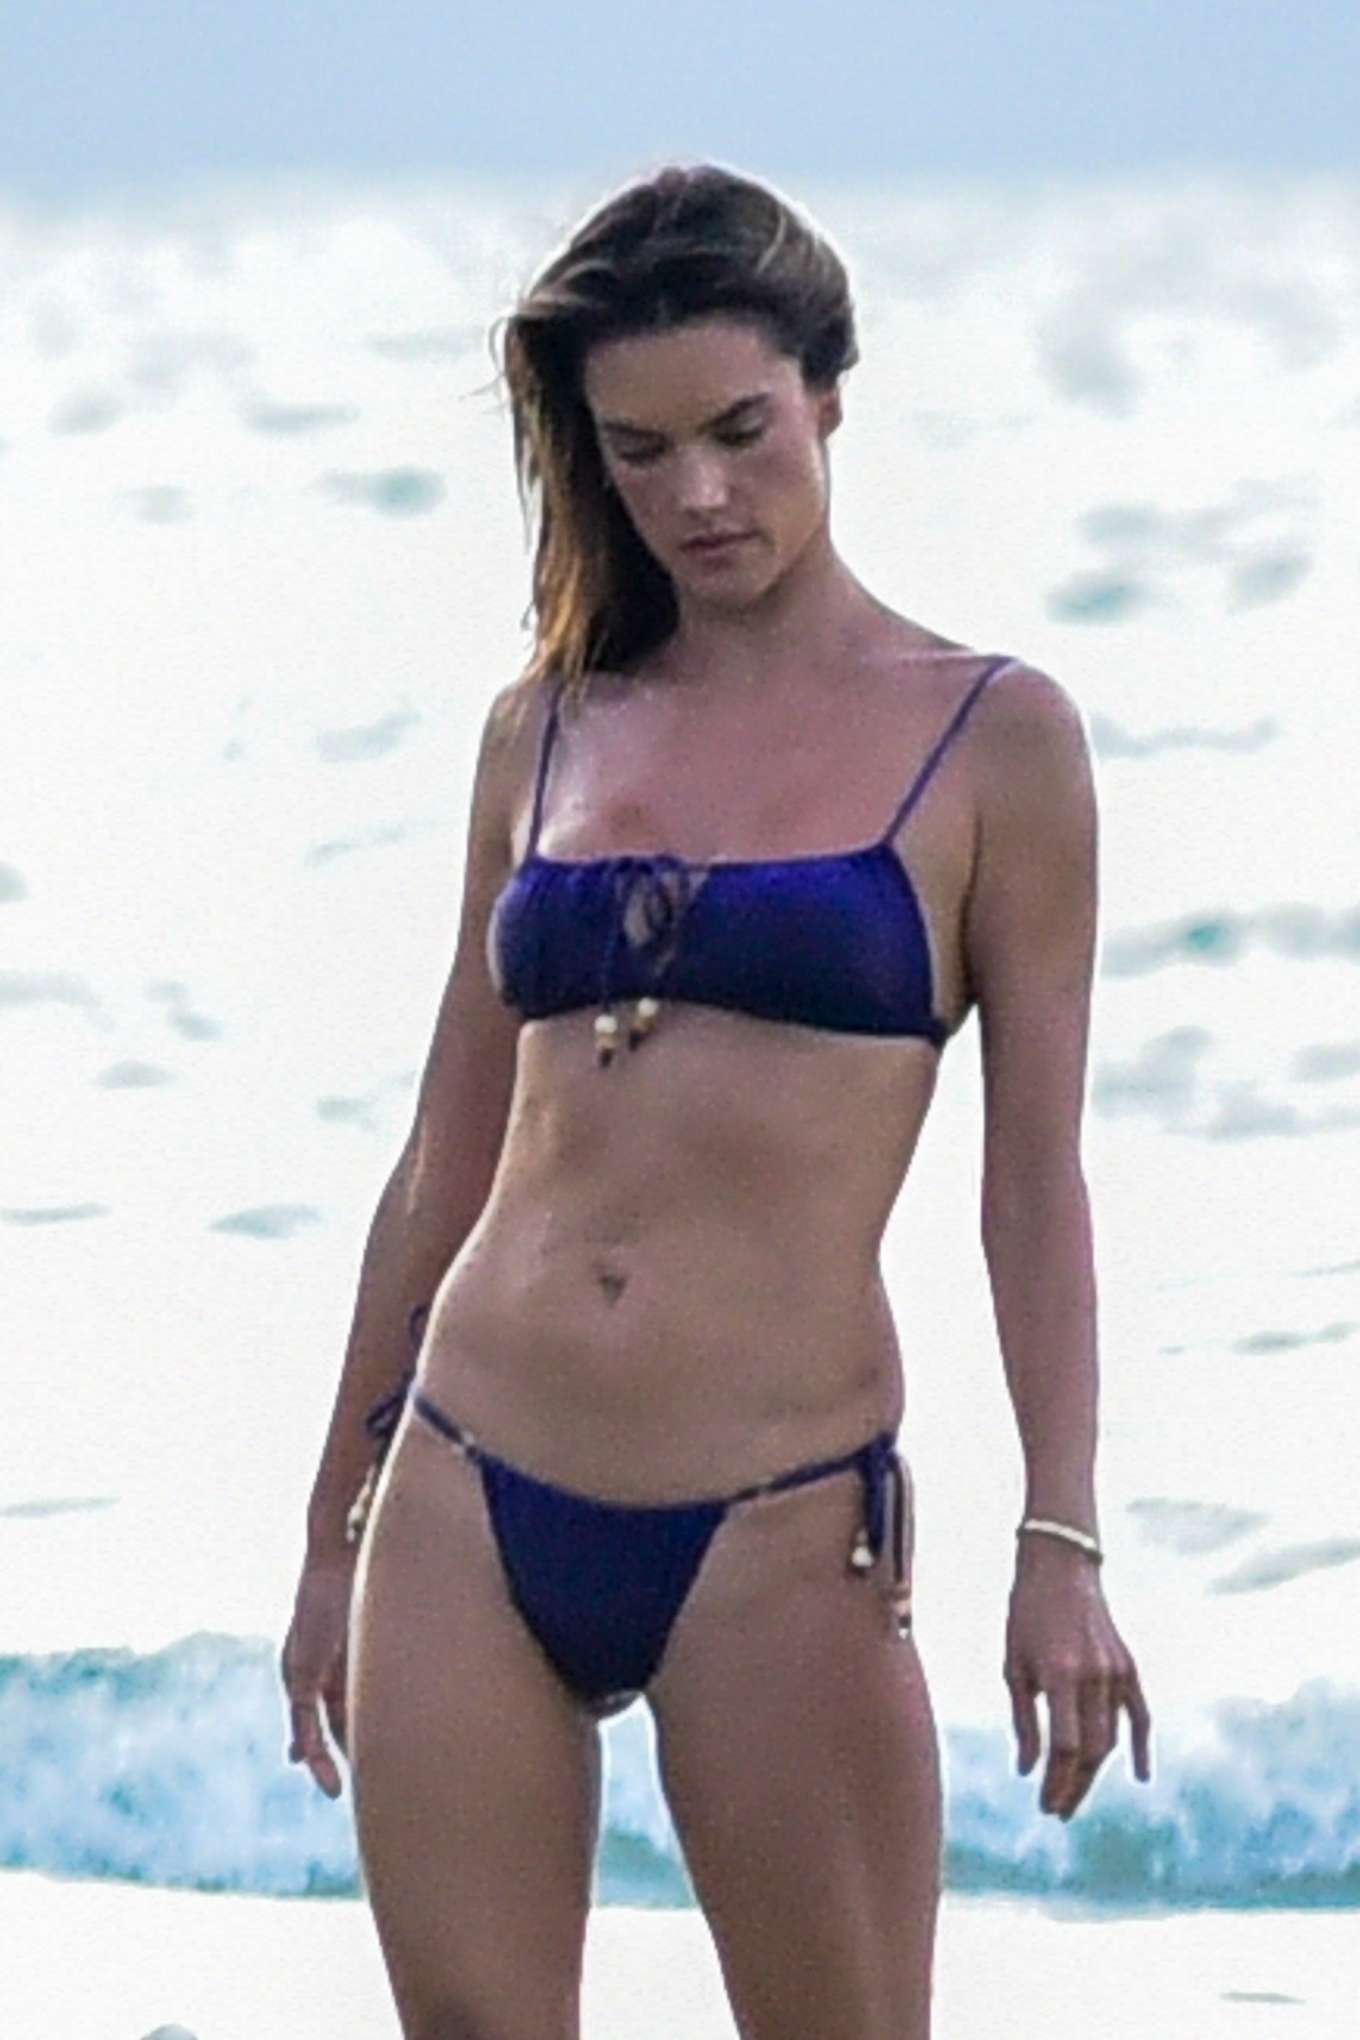 Alessandra Ambrosio in Blue Bikini - Photoshoot on the beach in Florianopolis